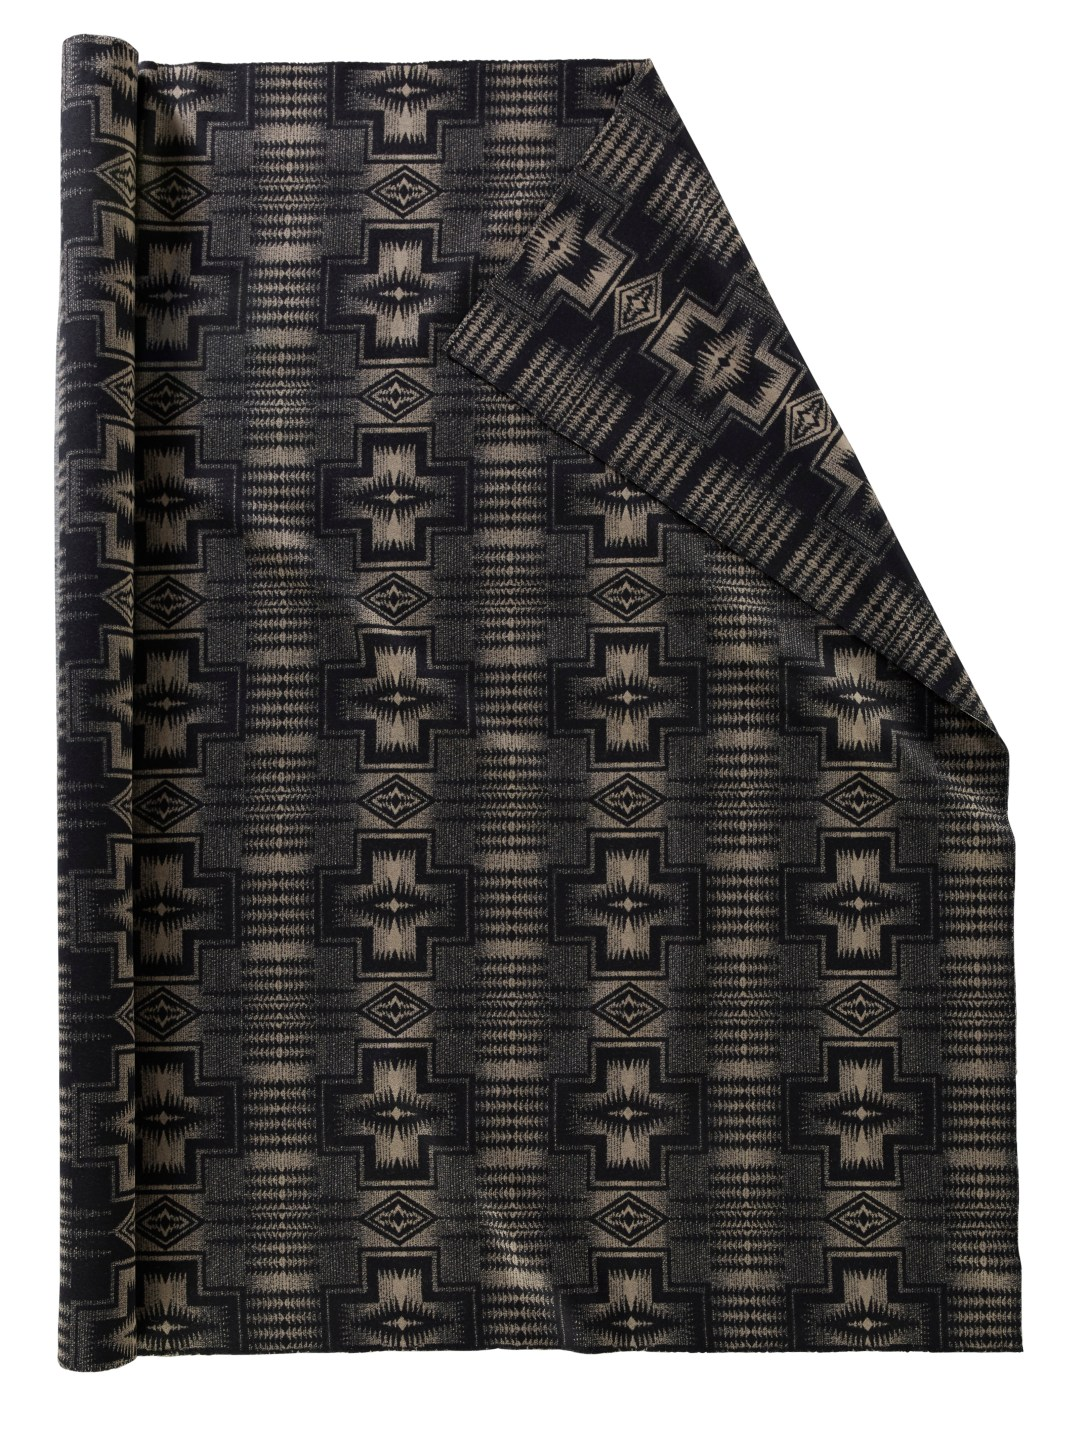 A roll of Pendleton wool fabric in Harding Black and Tan, a pattern with crosses and small chains of arrows in mostly black with accents of a greyish-tan.